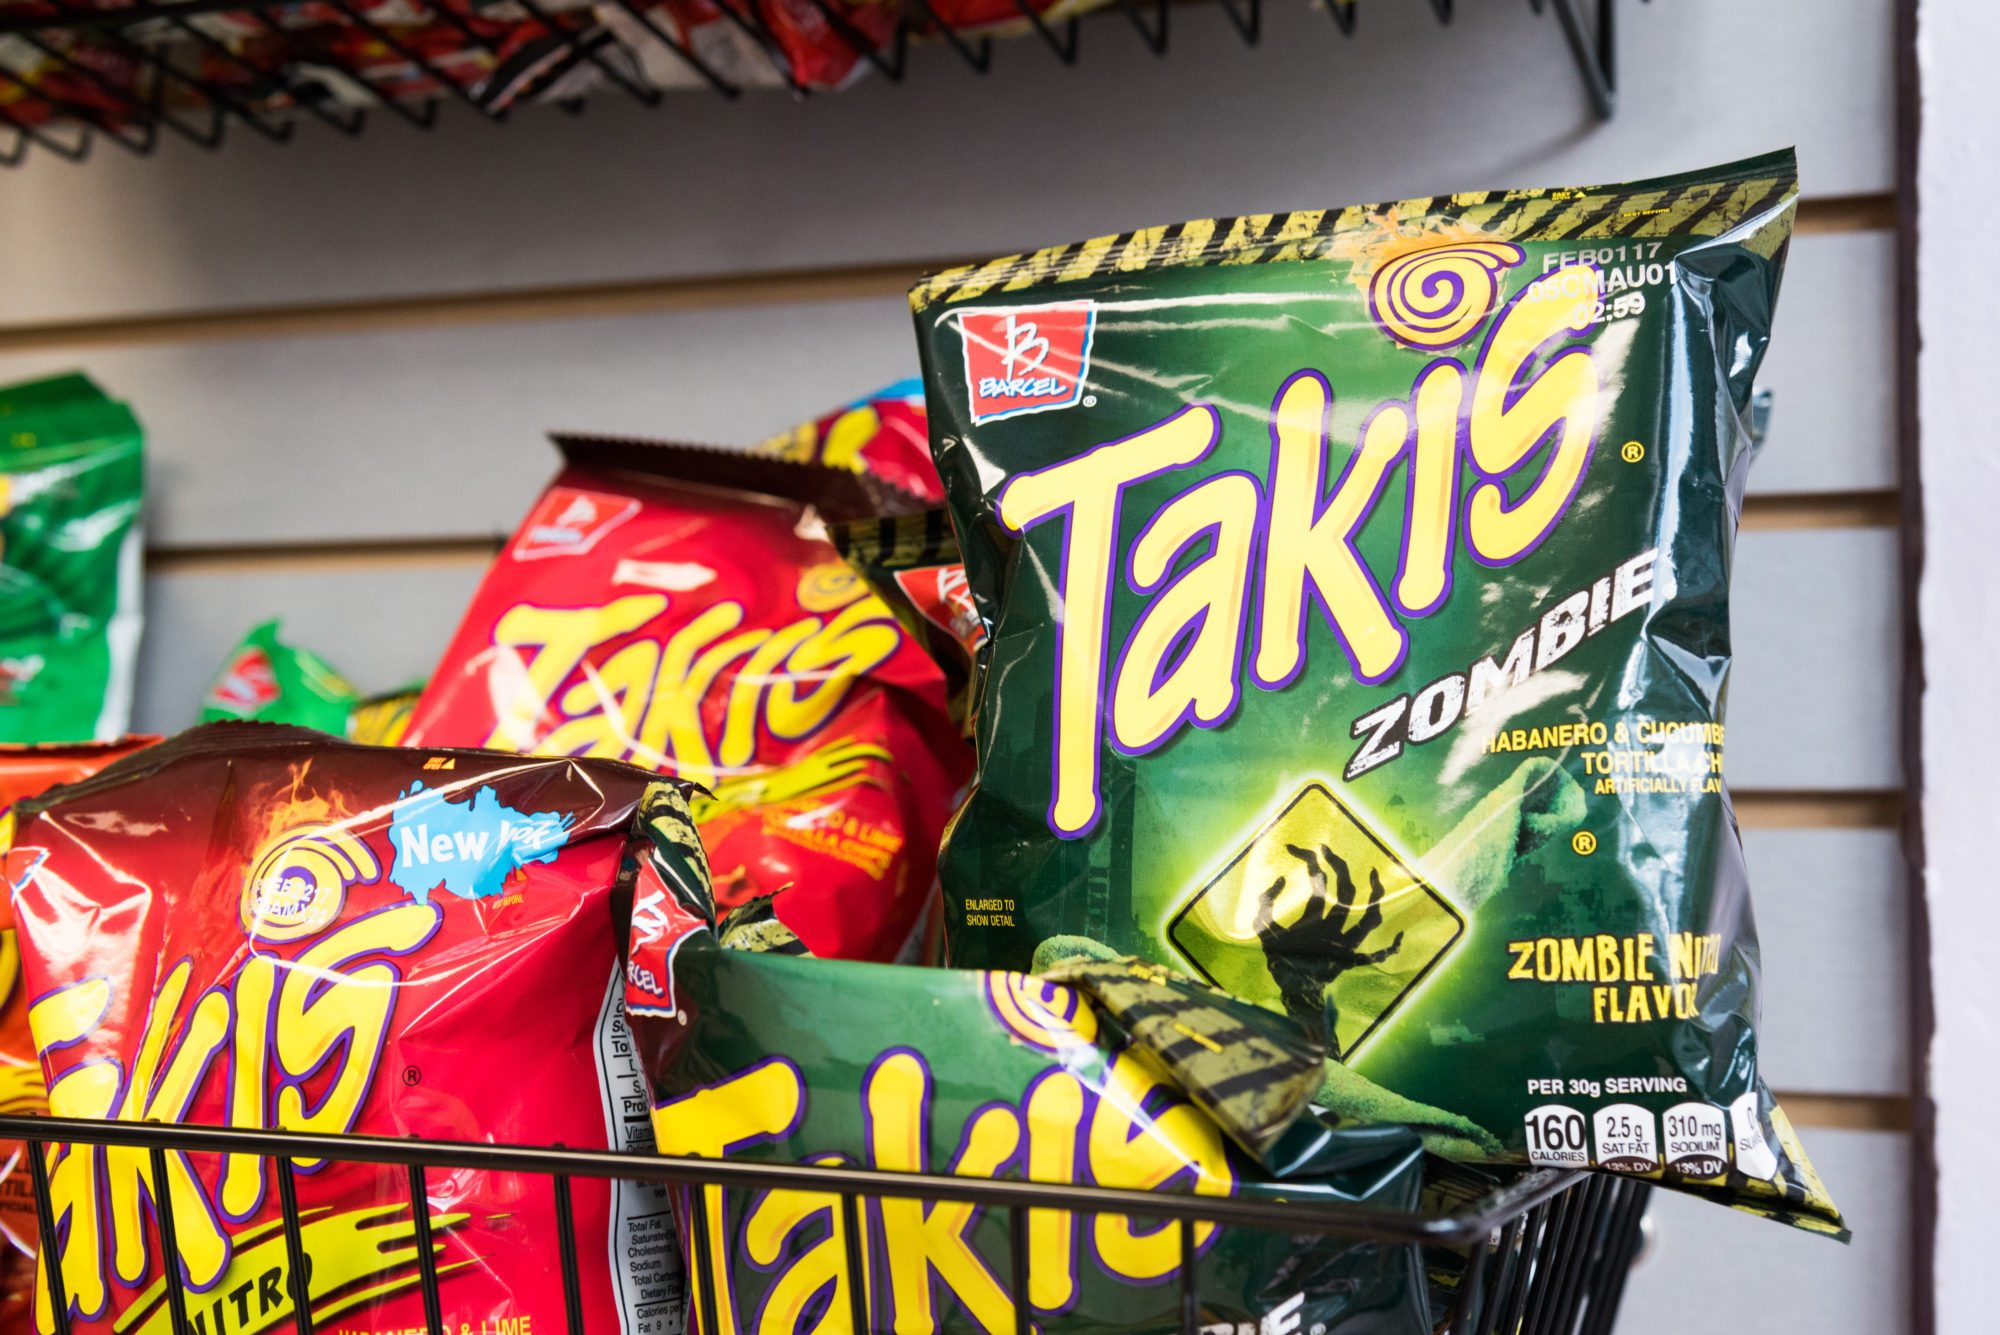 toronto-food-shops-ridiculist-sweet-addictions-candy-co-takis-chips-zombie-flavour